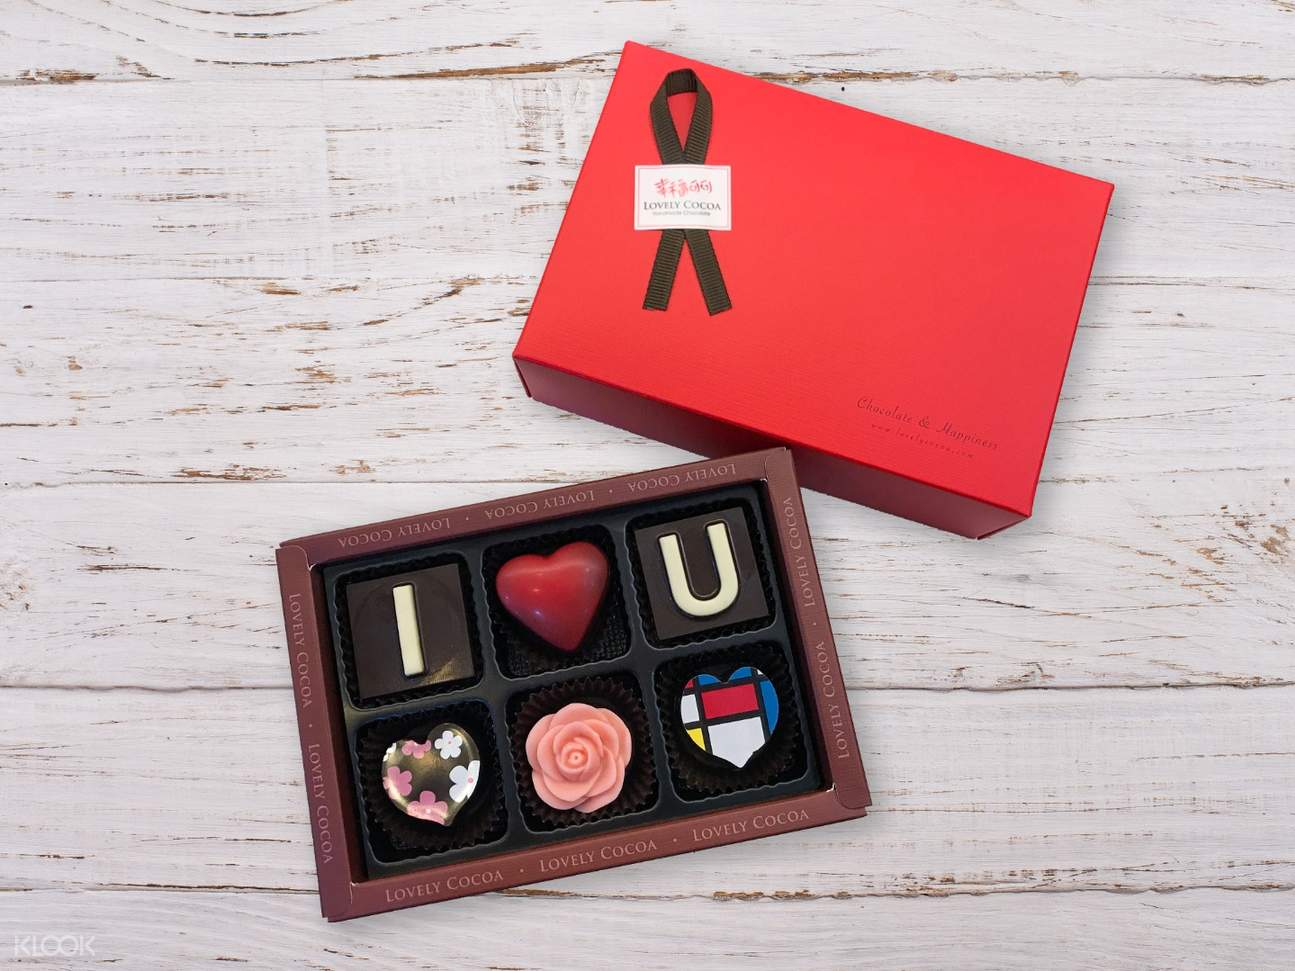 Lovelycocoa chocolate gift box 6 pieces